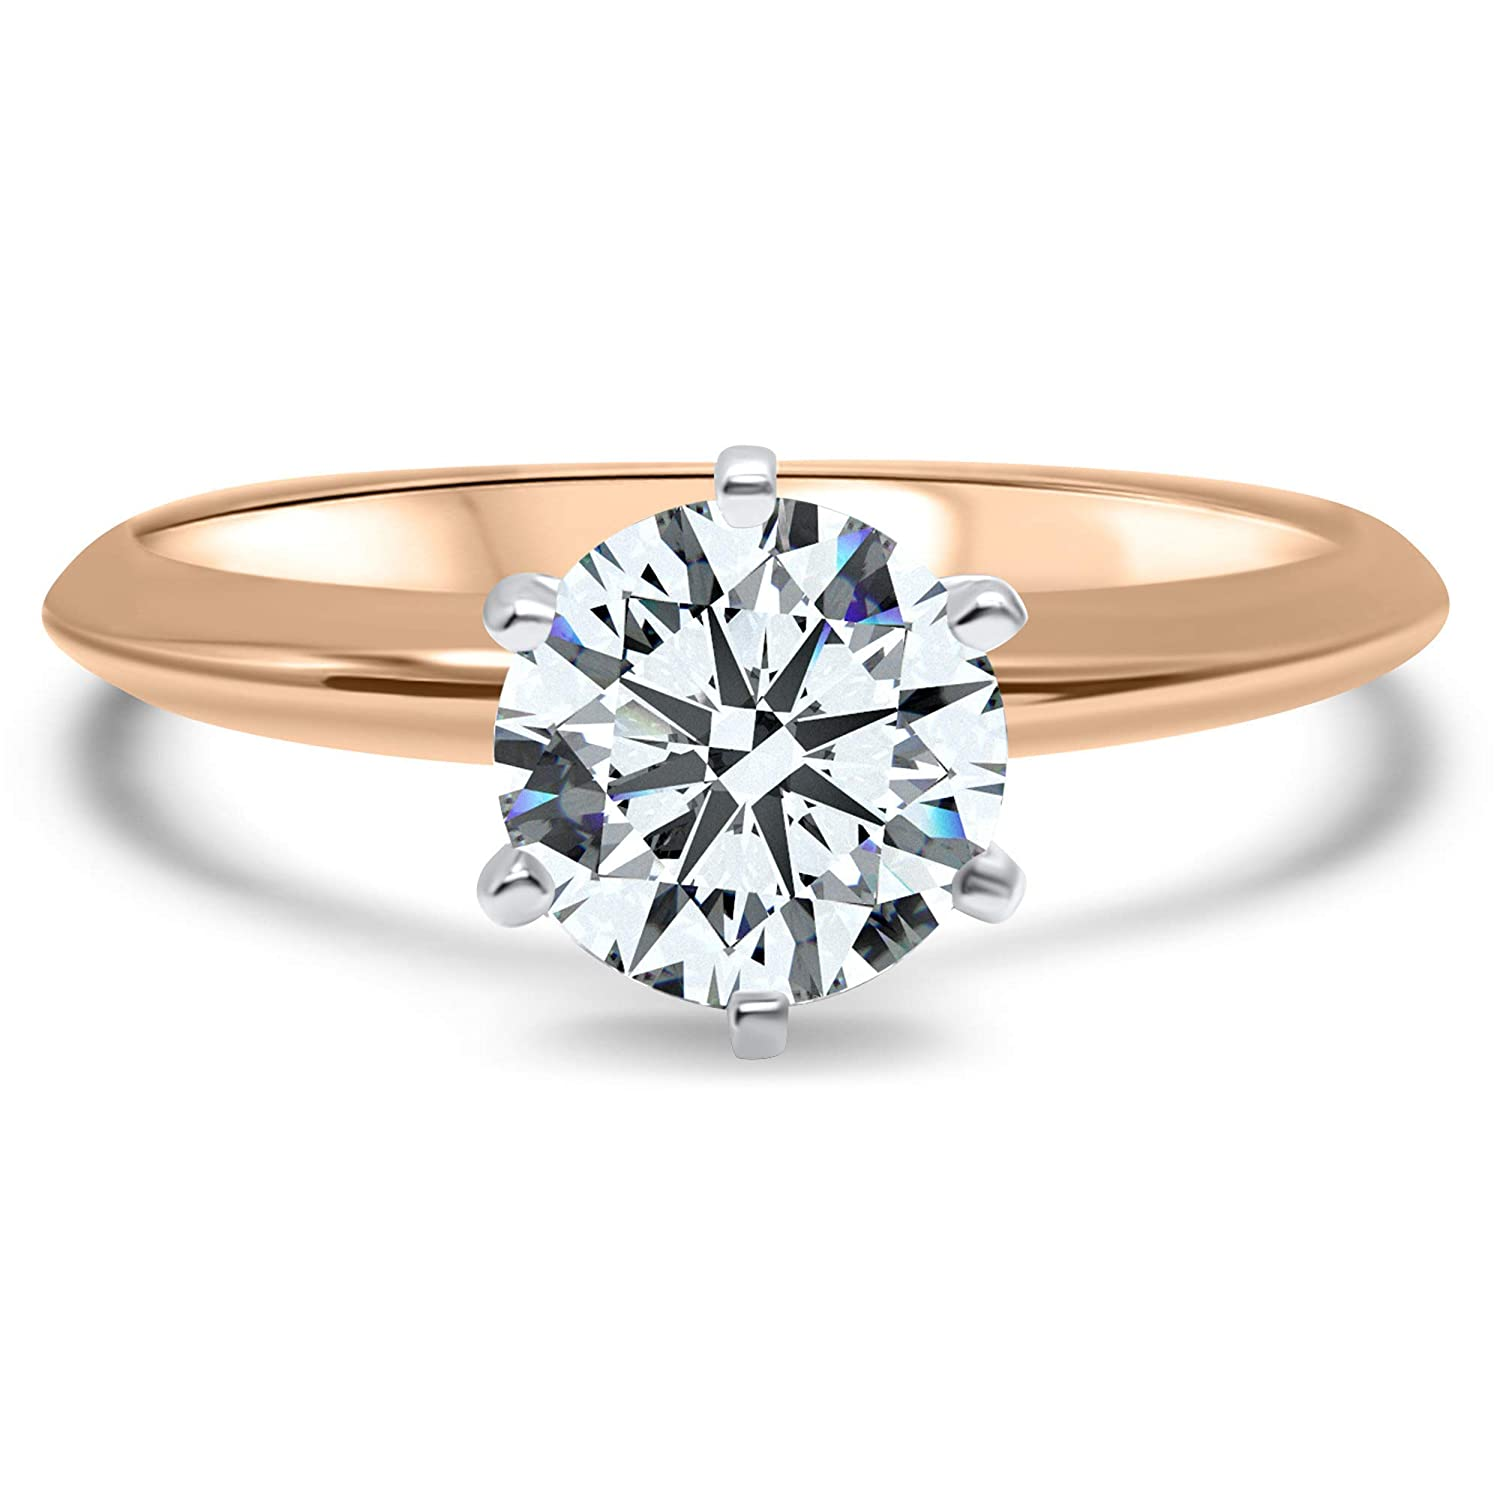 1.90 Ct White Round Moissanite Solitaire Engagement Ring Promise Ring Dainty Ring Jewelry Gift For Her Daily Ring